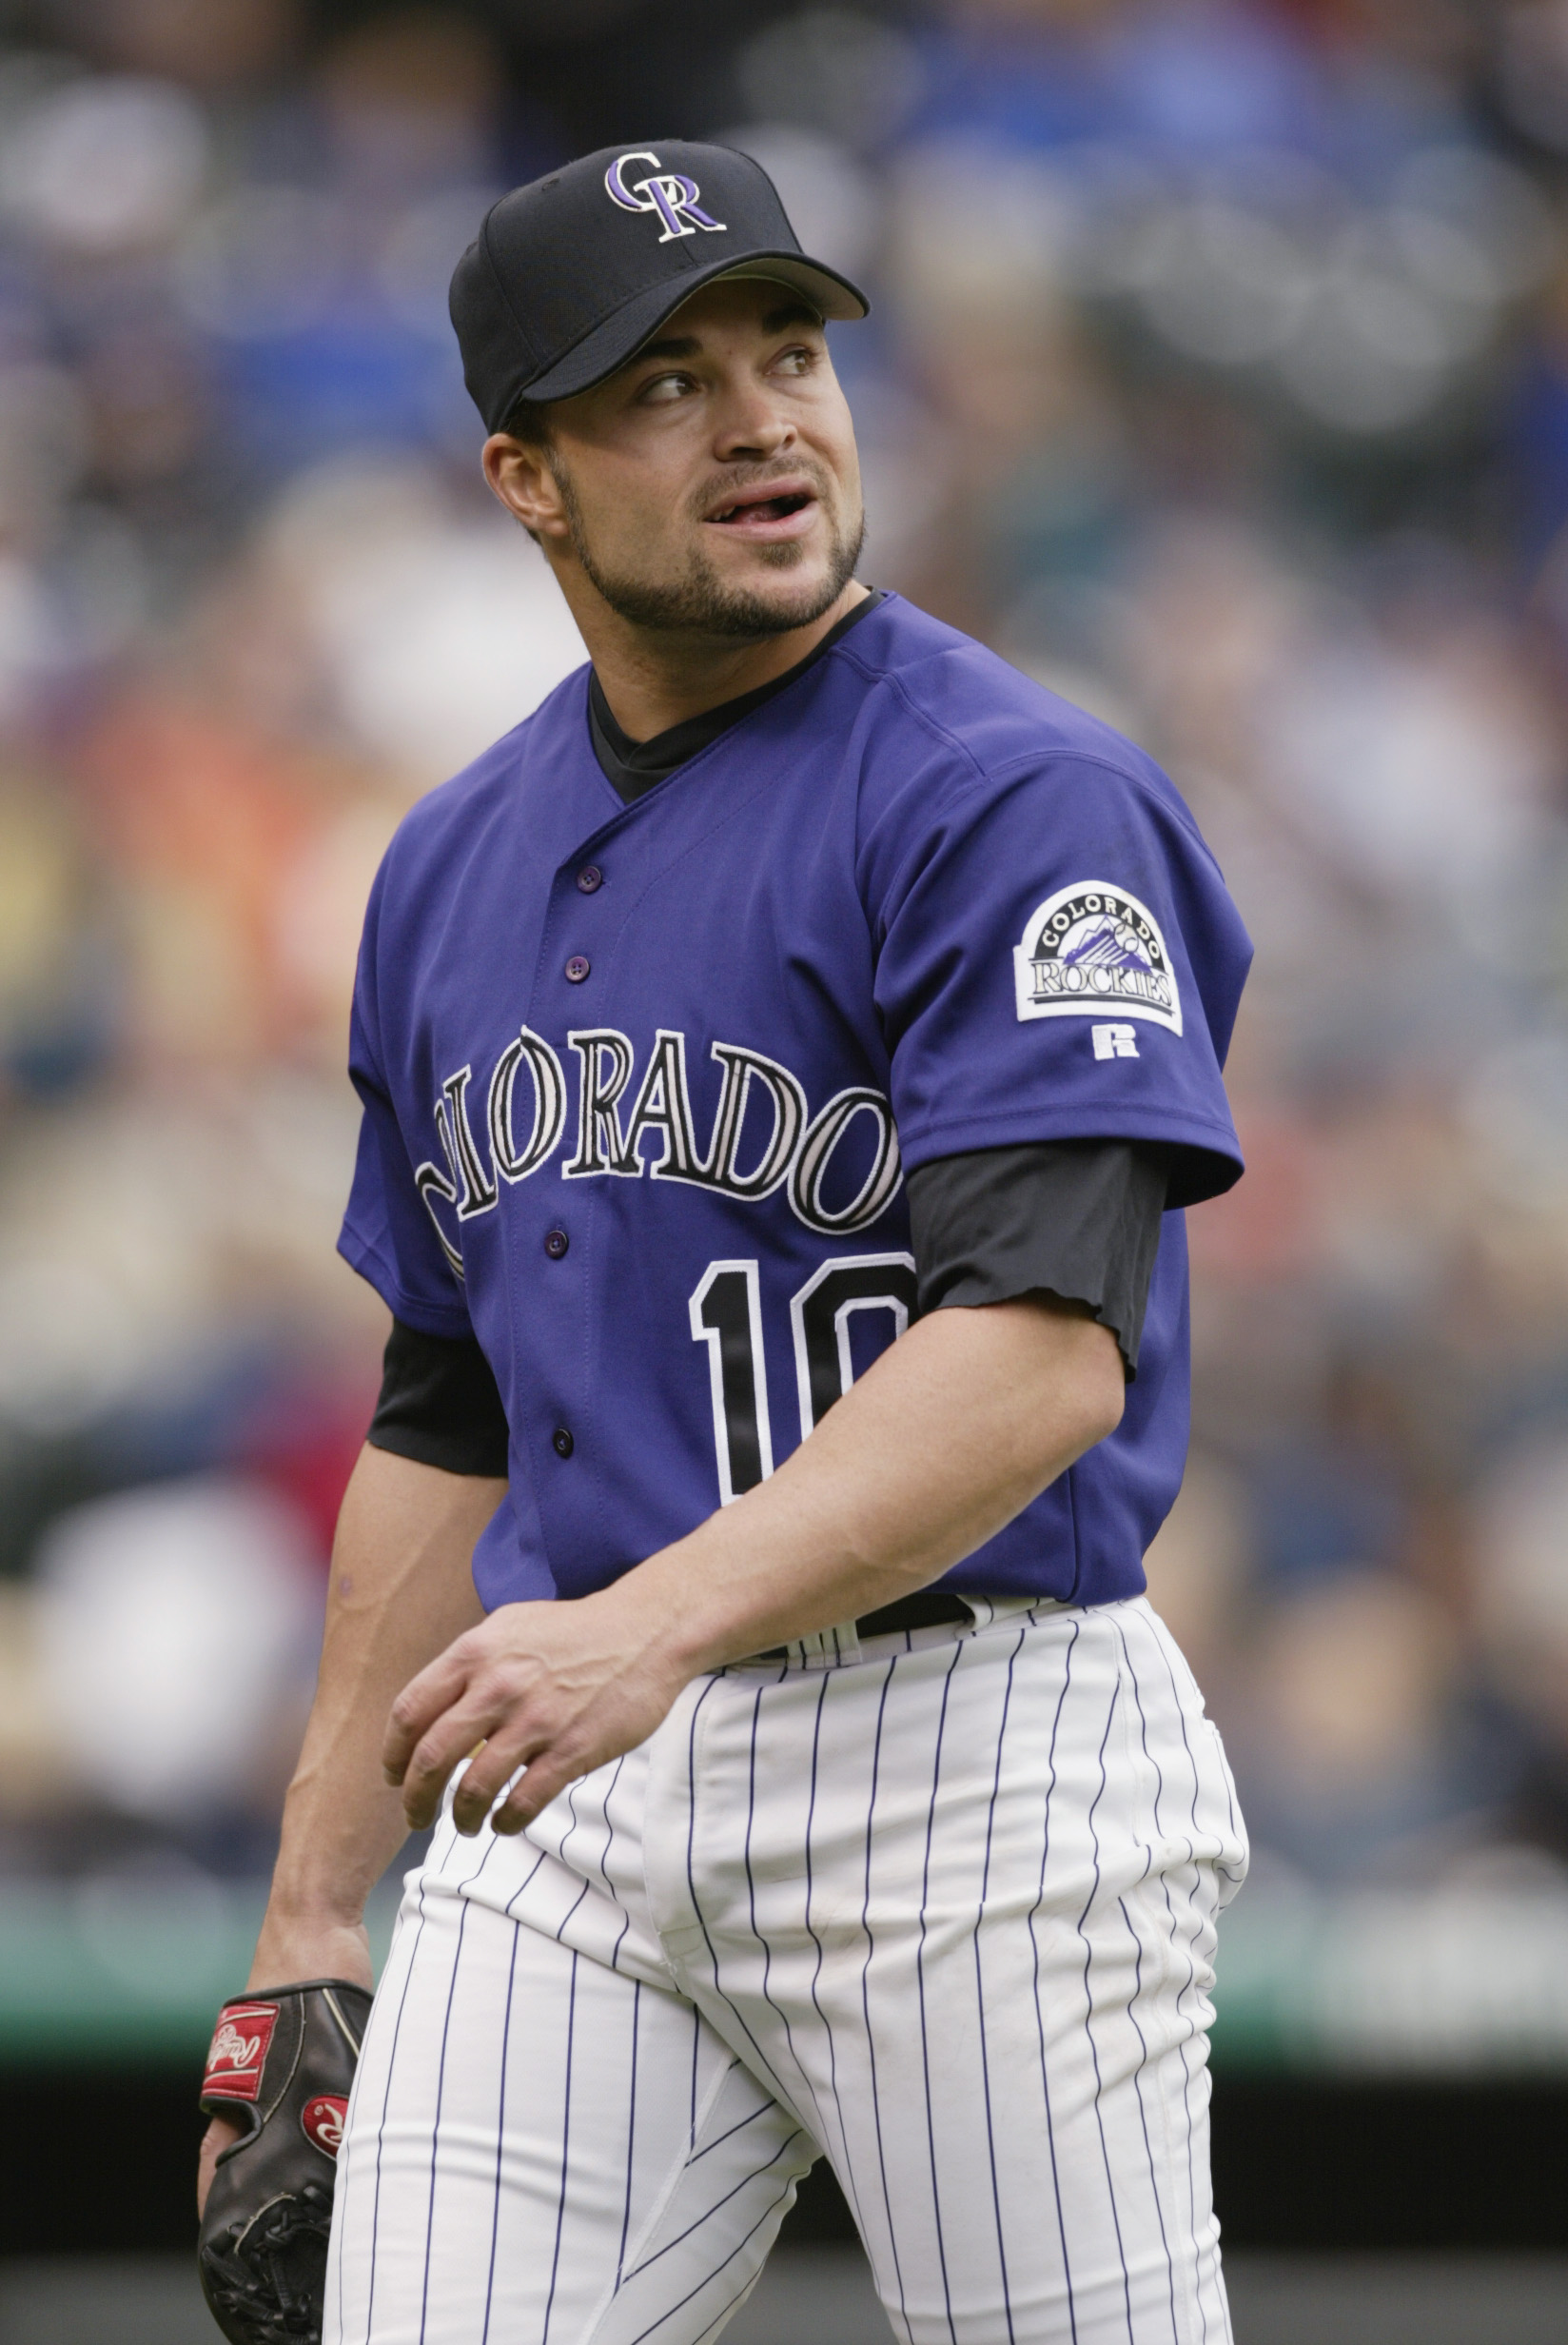 DENVER - May 16 2002:   Starting pitcher Mike Hampton #10 of the Colorado Rockies smiles as he walks off the field after retiring the Florida Marlins in the third inning at Coors Field in Denver, Colorado, on May 16, 2002.   Hampton got the 10-3 win on th